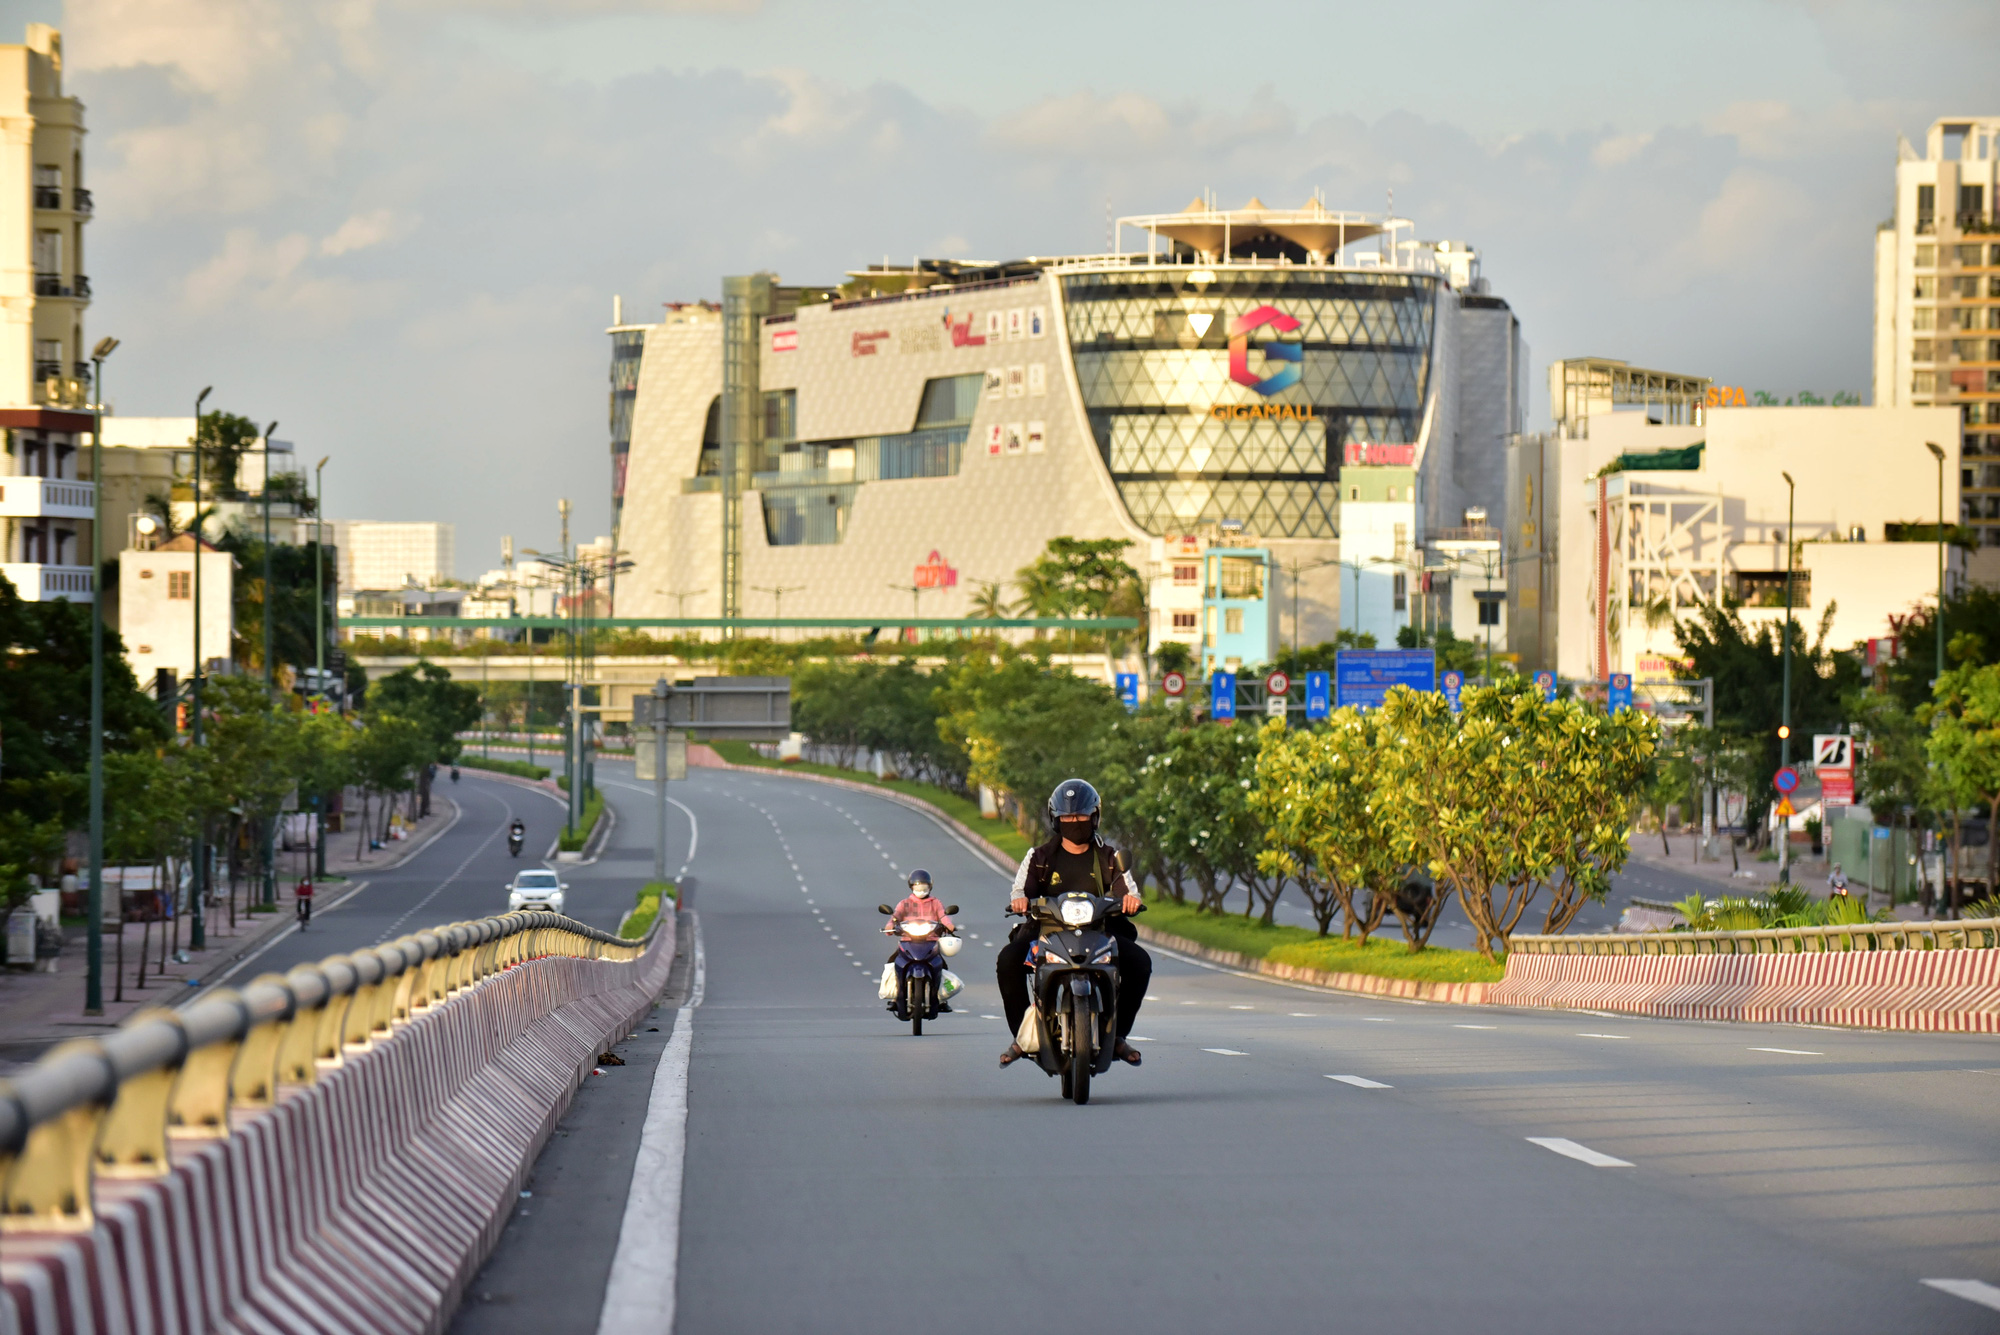 Few commuters travel on Binh Loi Bridge in Ho Chi Minh City after 6:00 pm on July 26, 2021. Photo: Duyen Phan / Tuoi Tre